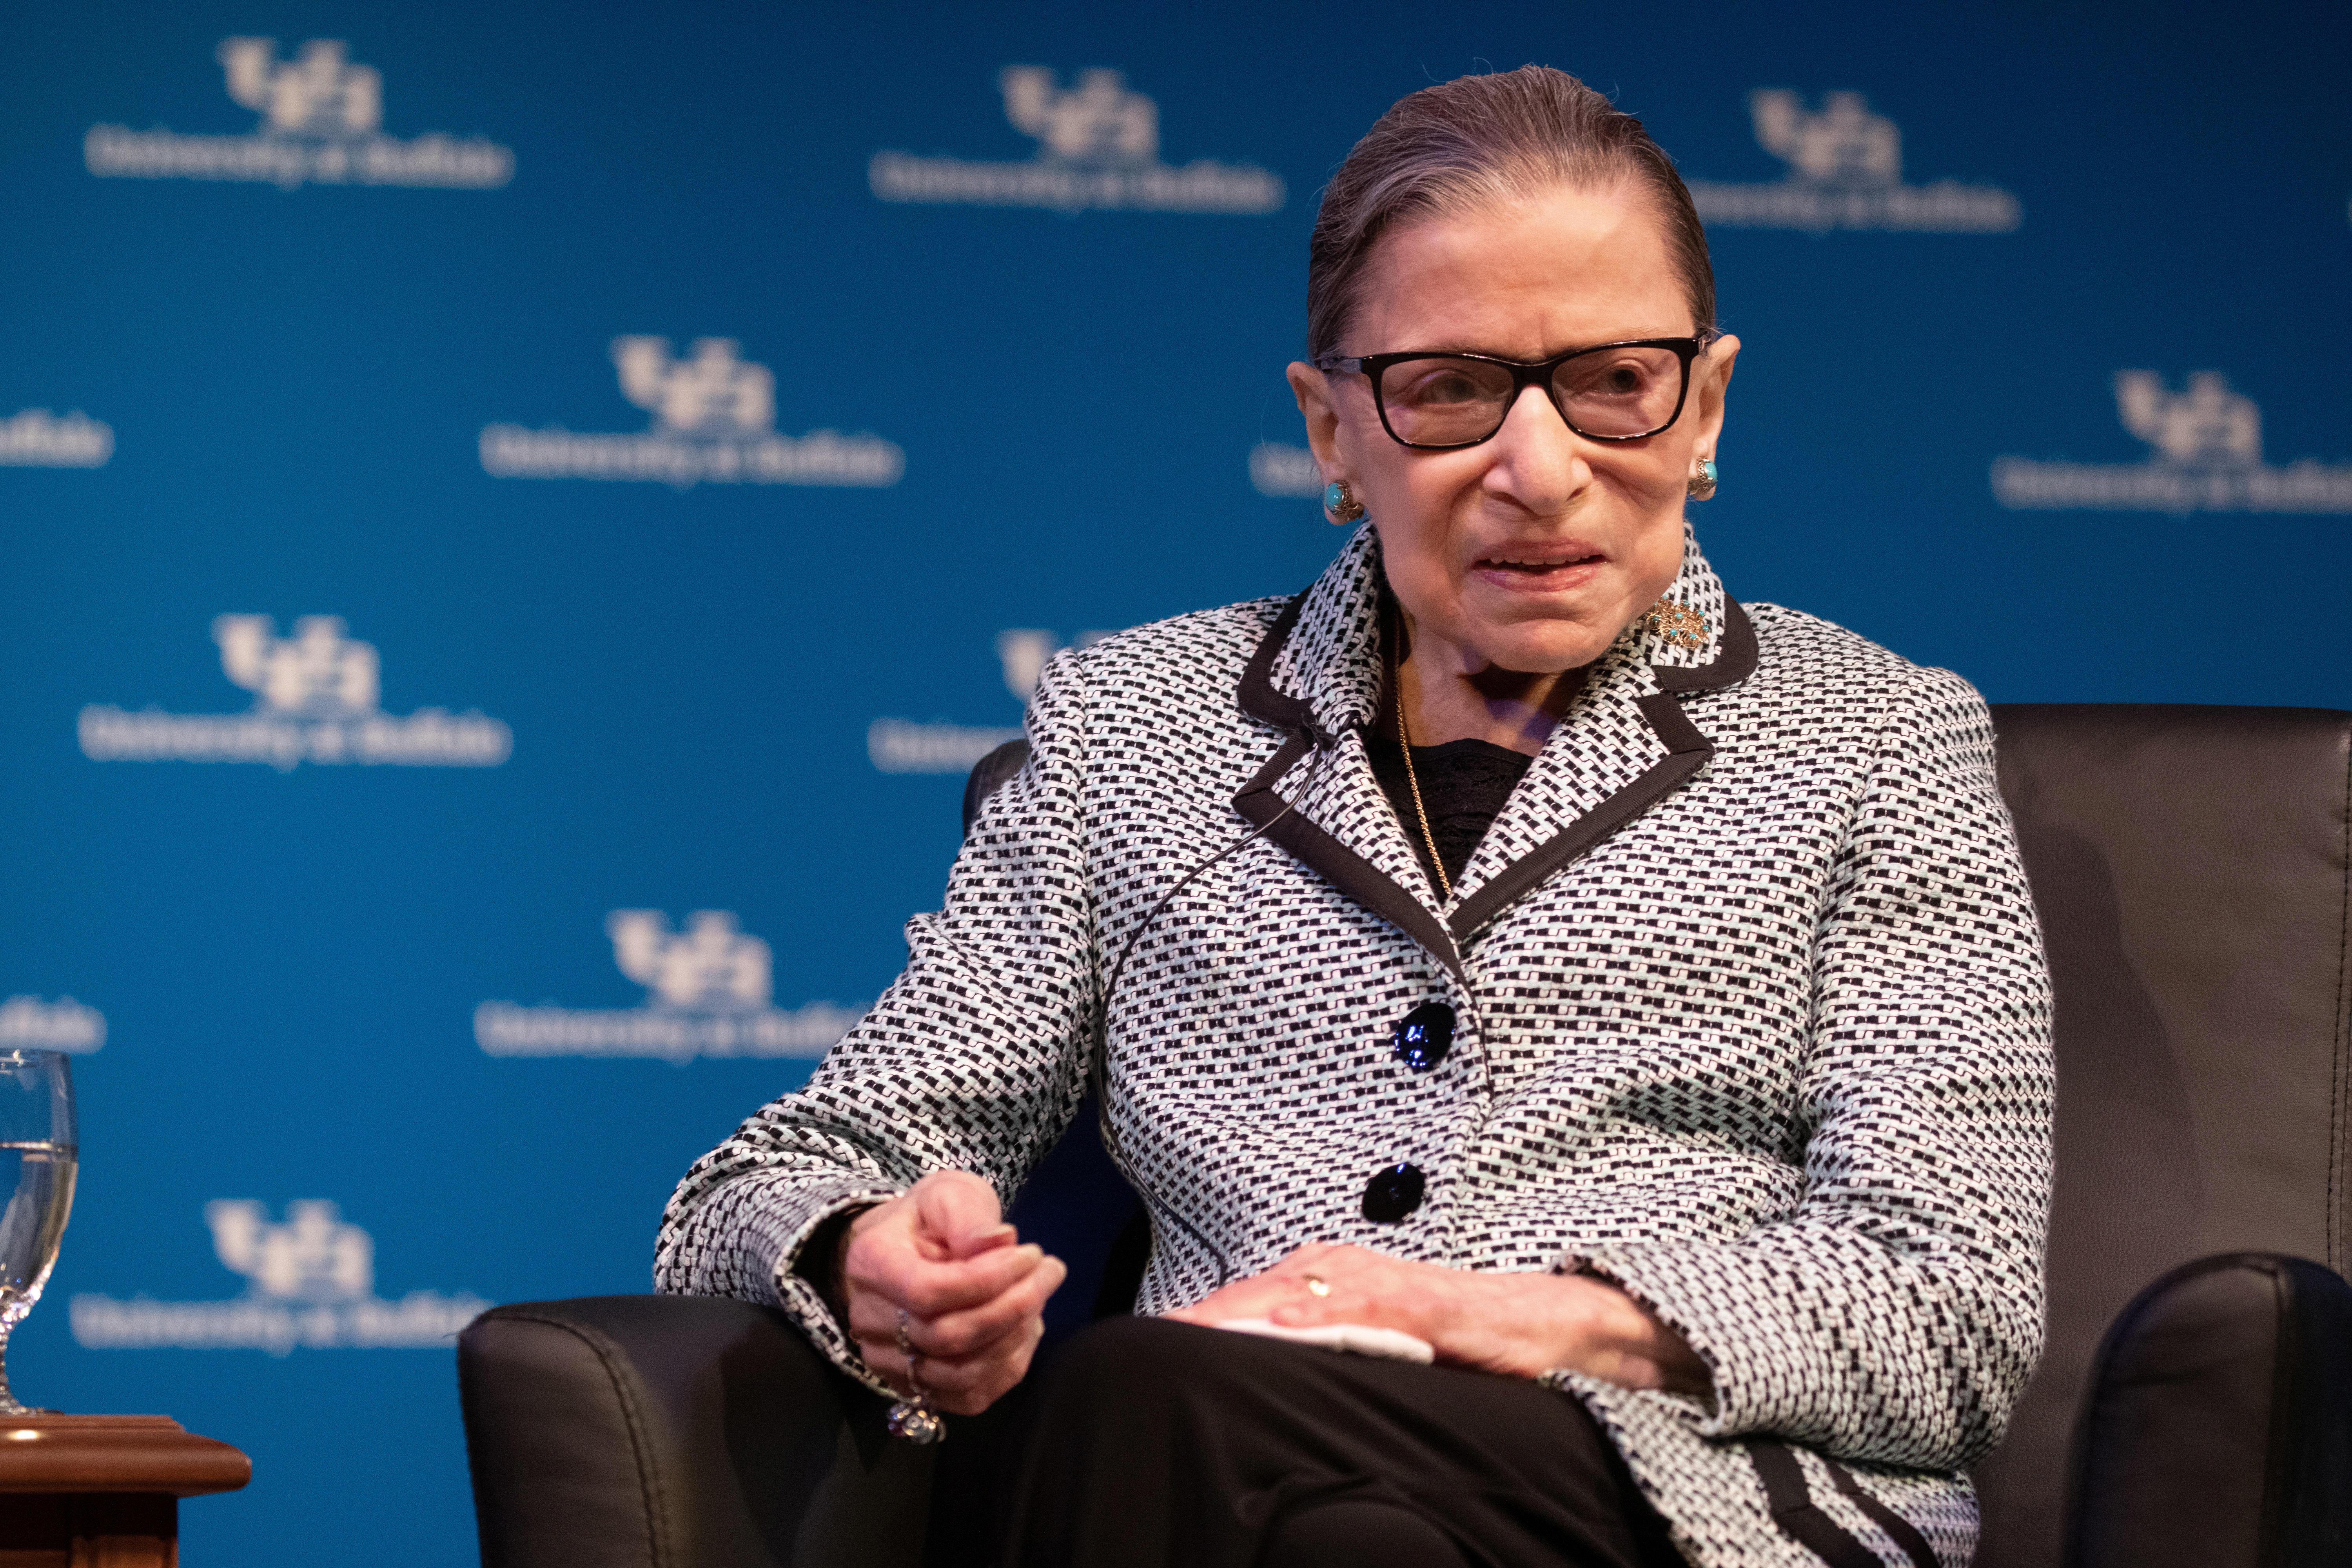 Ruth Bader Ginsburg is being treated for cancer recurrence